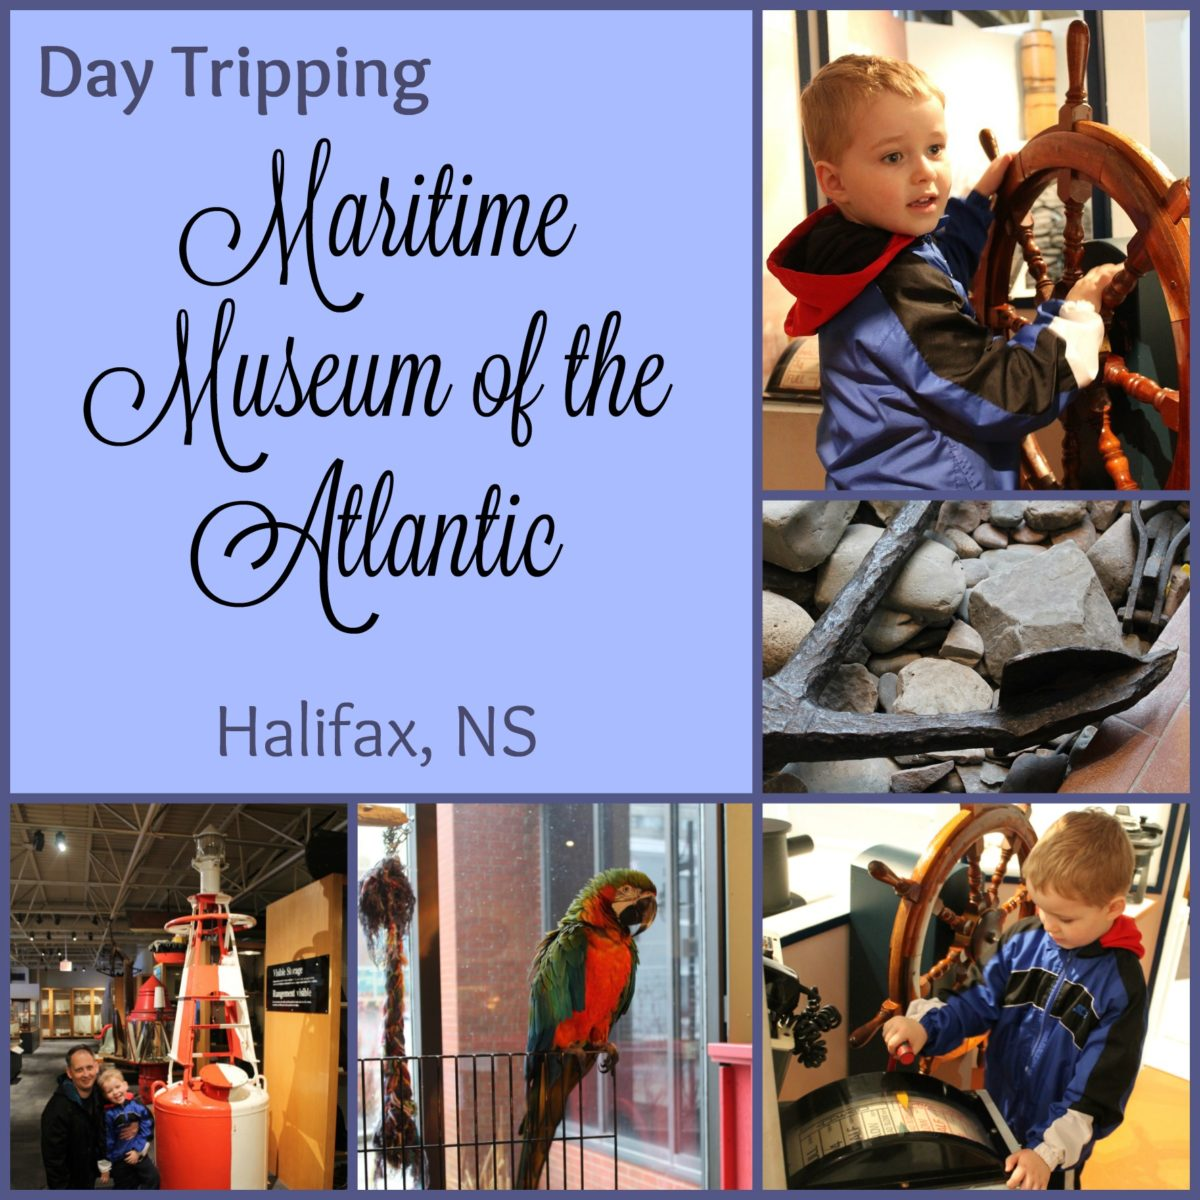 Visiting the Maritime Museum of the Atlantic, Halifax NS